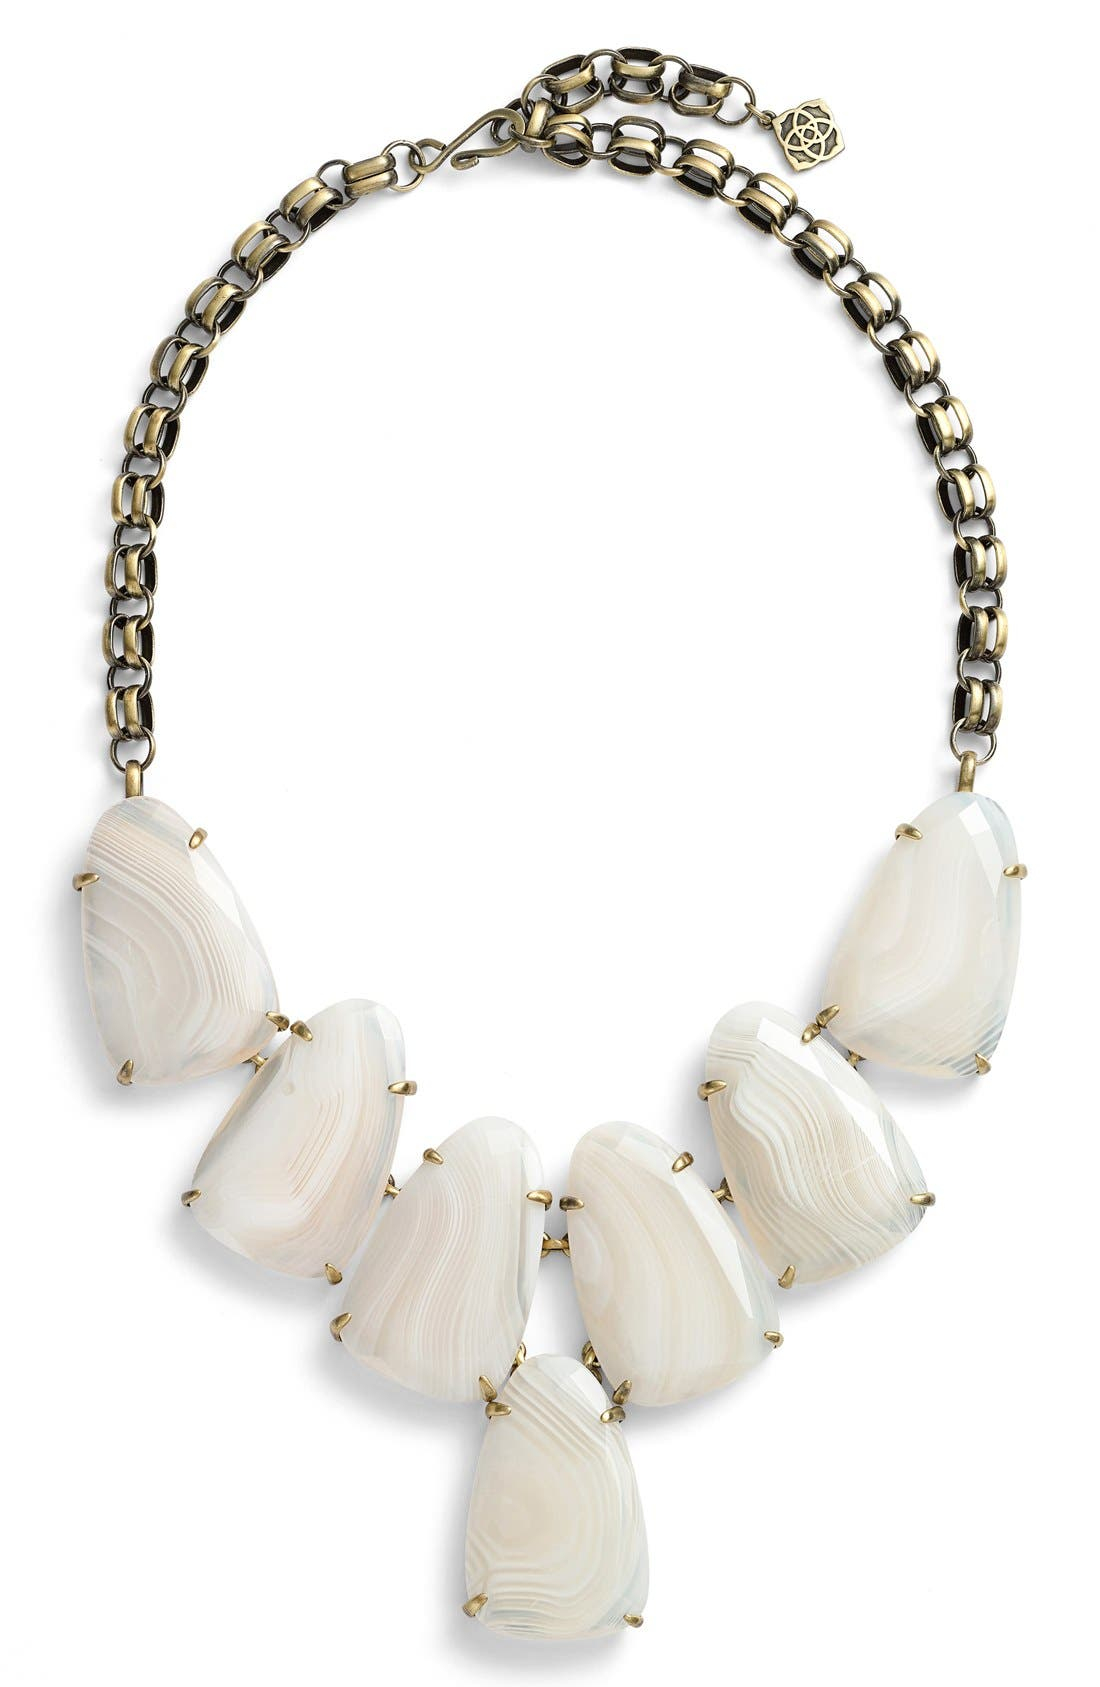 Harlow Necklace,                             Main thumbnail 1, color,                             White Banded Agate/ Brass